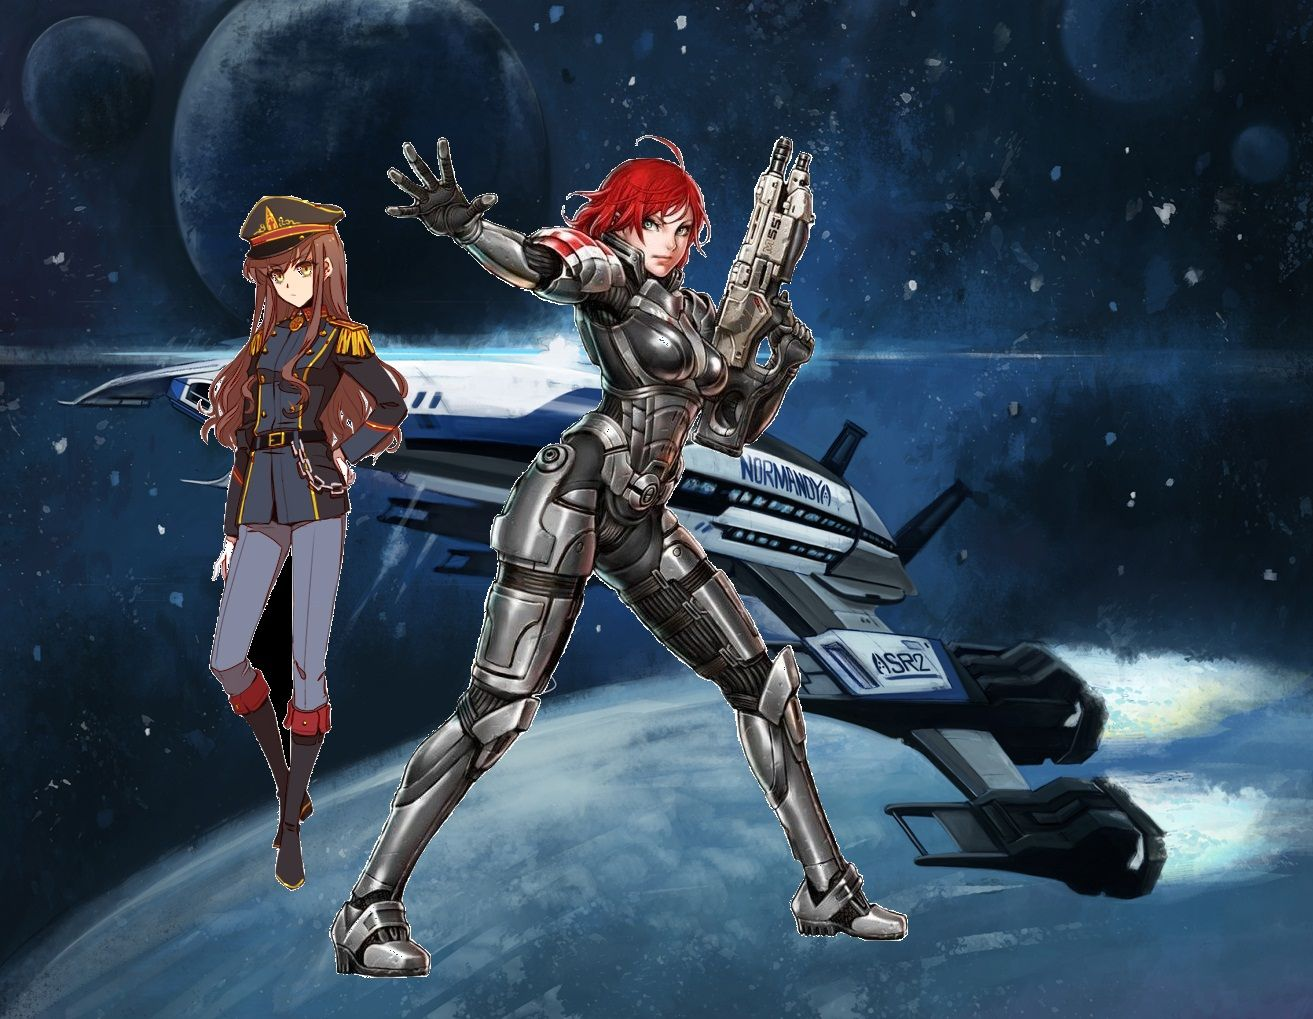 This Is My Fan Pic Contribution For A Good Fanfic Story Of Boyzilla Imouto Girlzilla Name Digital Galaxy Fate Extra X M Fan Picture Humans Series Mass Effect Fate series > fate/stay night | leggi le 4 recensioni. this is my fan pic contribution for a